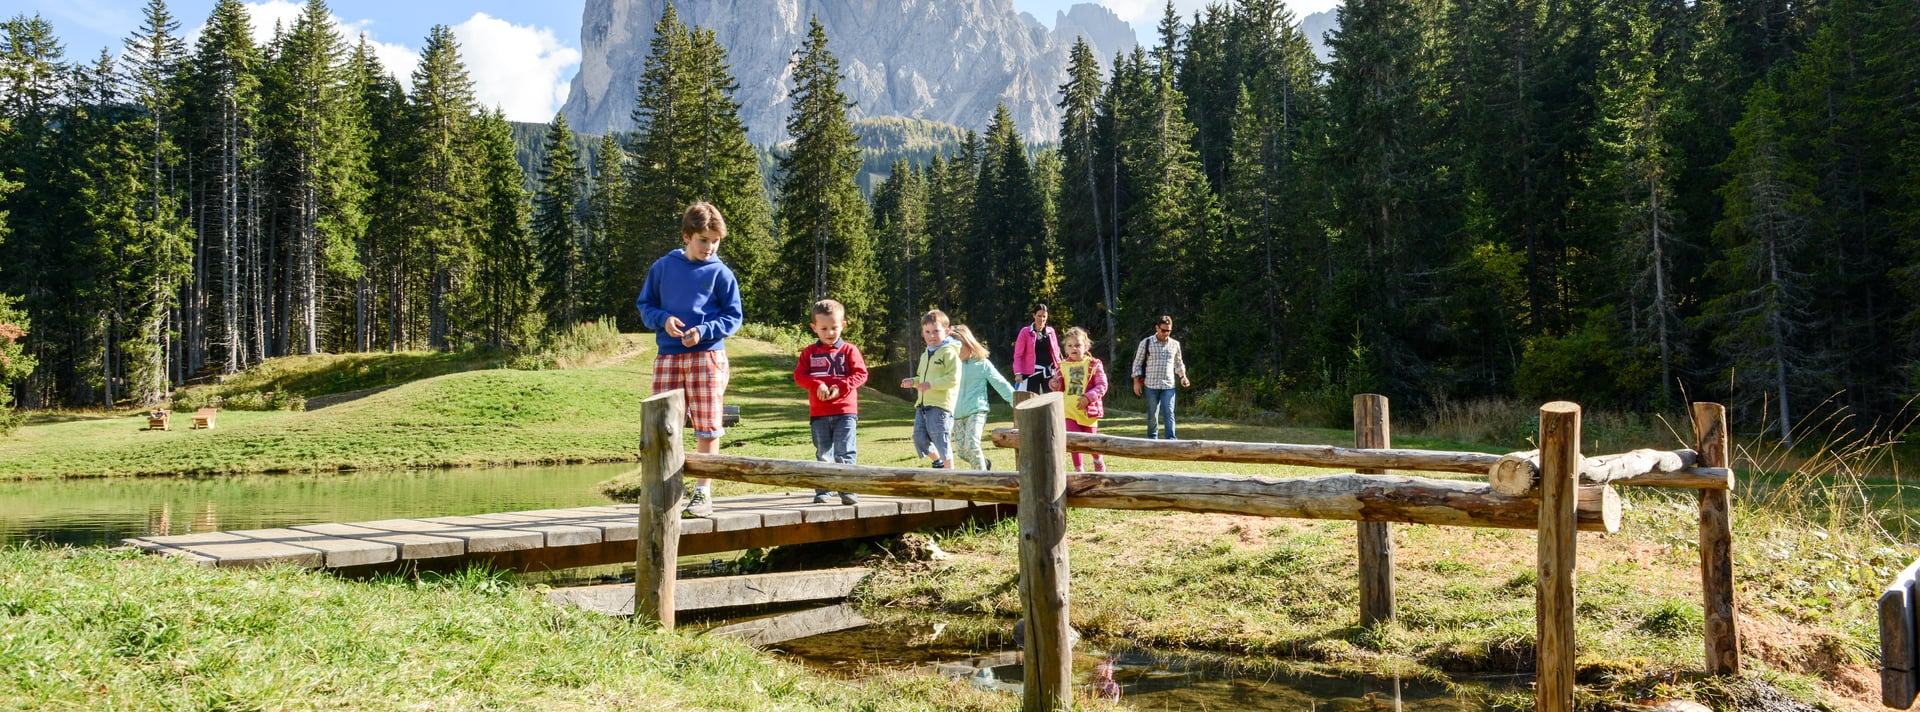 Our best family vacation in the Dolomites